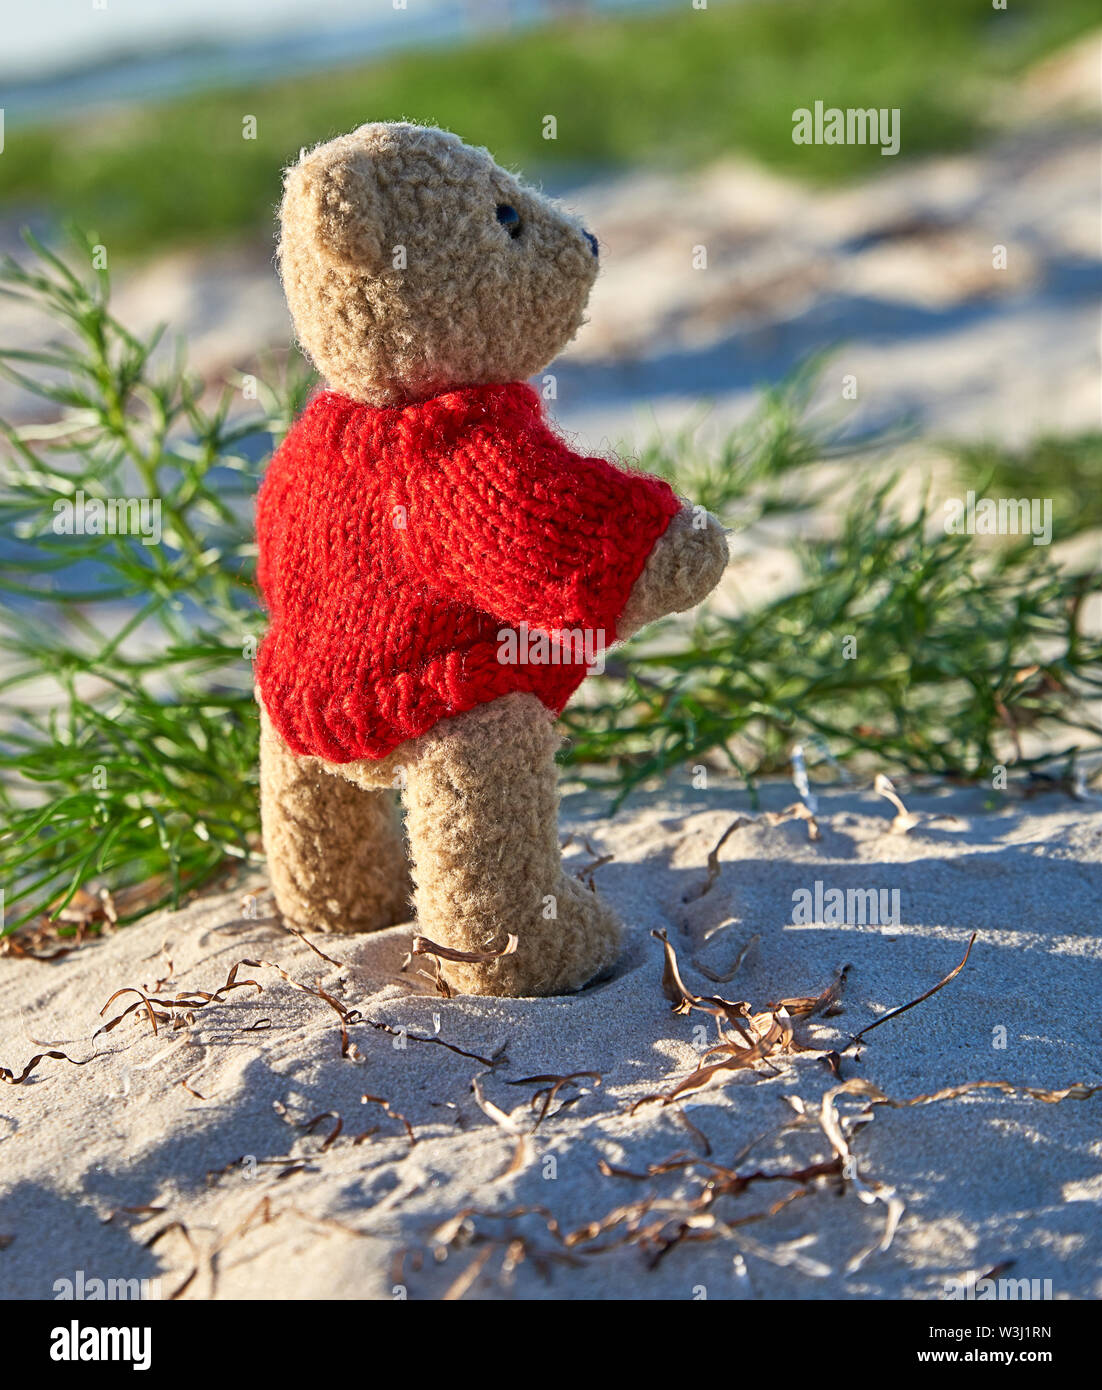 brown teddy bear in a red sweater stands on the sandy seashore and looks into the distance, concept of loneliness - Stock Image